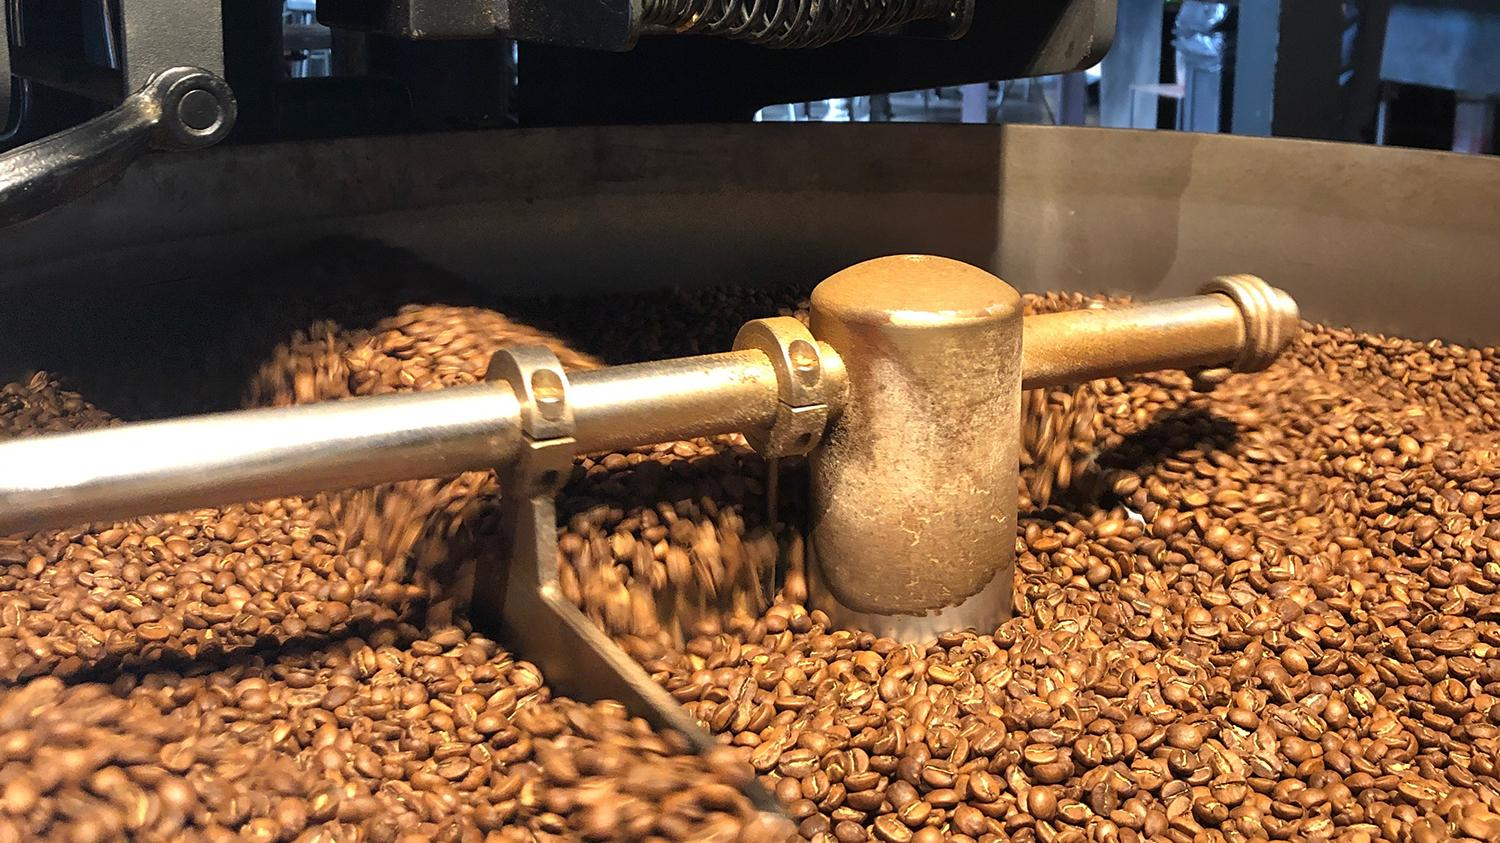 Beans being roasted at Cartel Coffee Lab